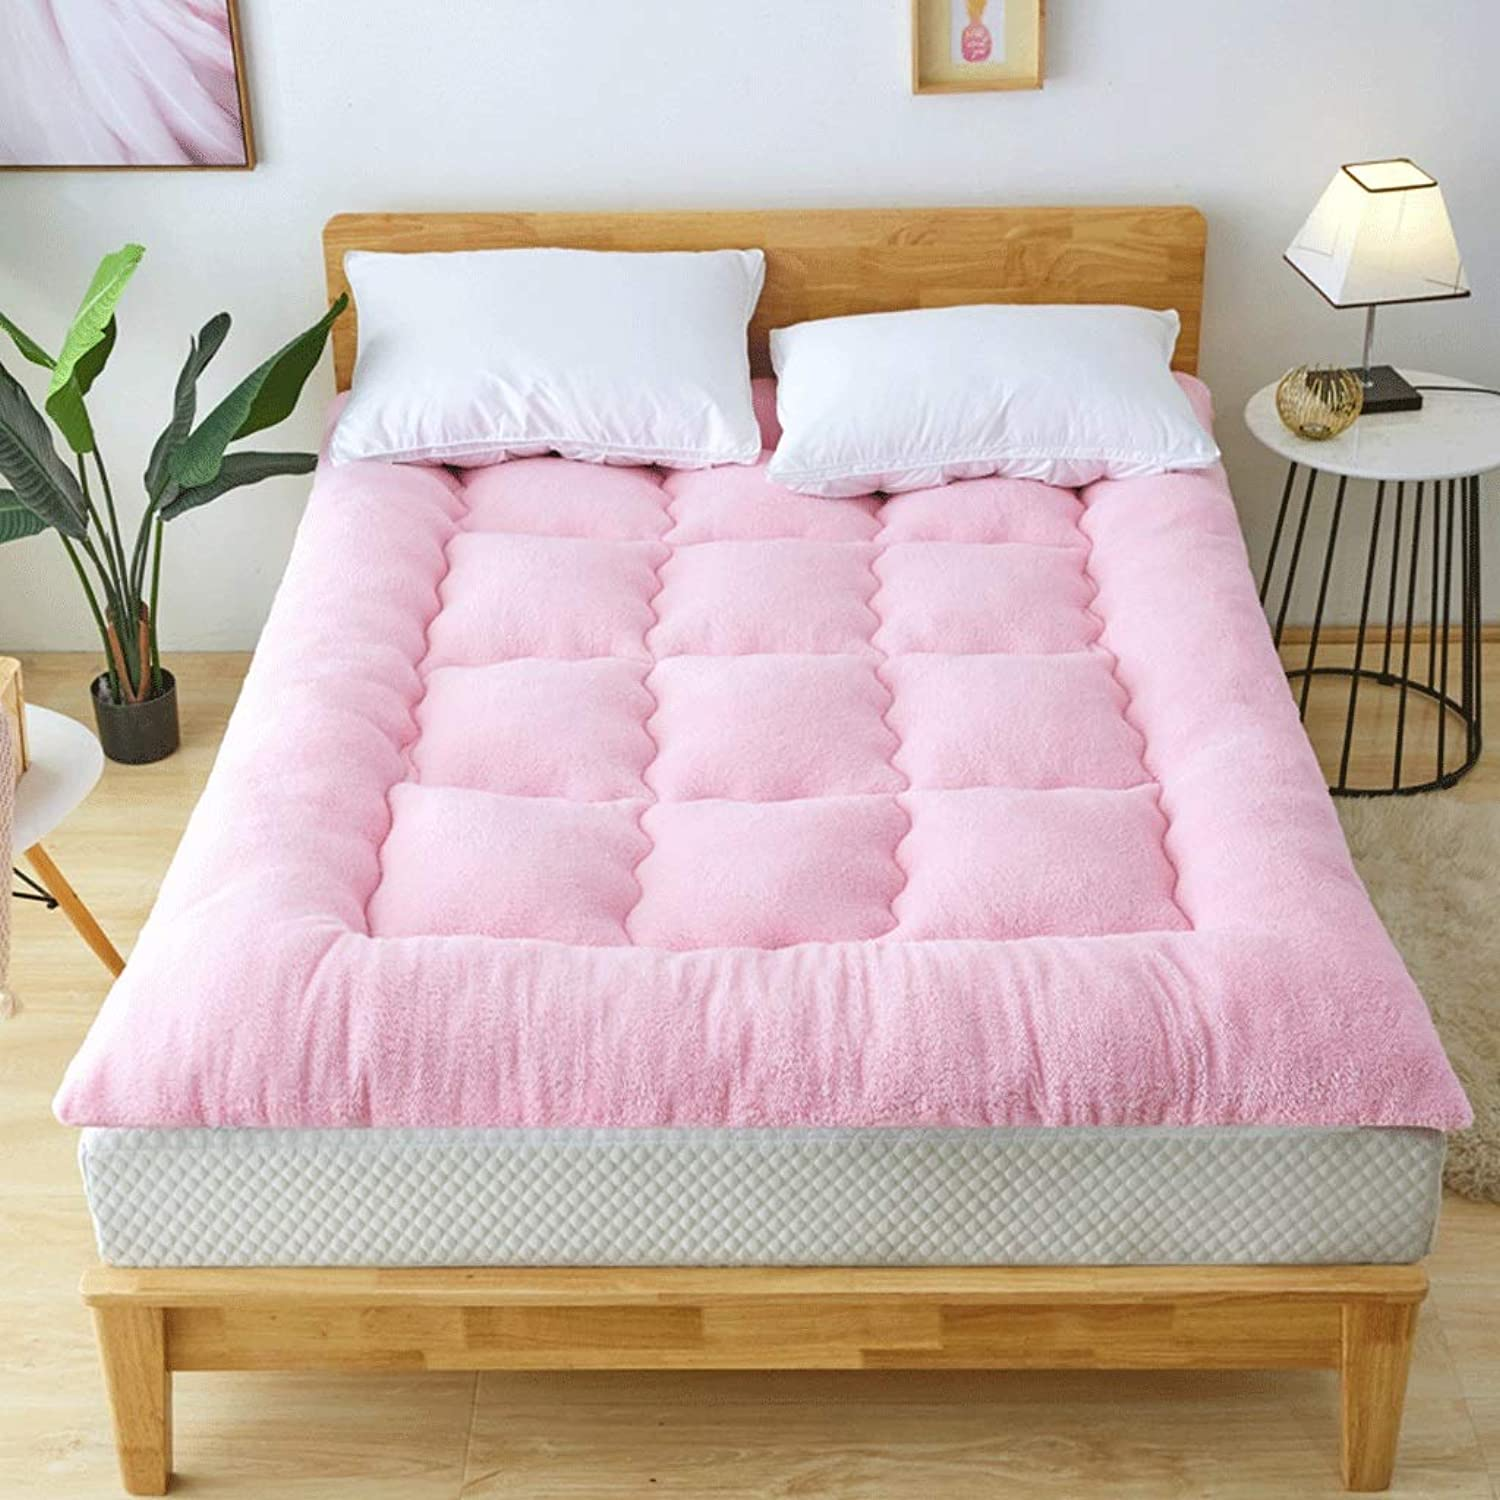 Tatami Mattress Thickening Warm Three Second Speed Hot Double Bedroom Sleeping Mat Living Room Hotel Bed was (color   Pink, Size   90x200cm)